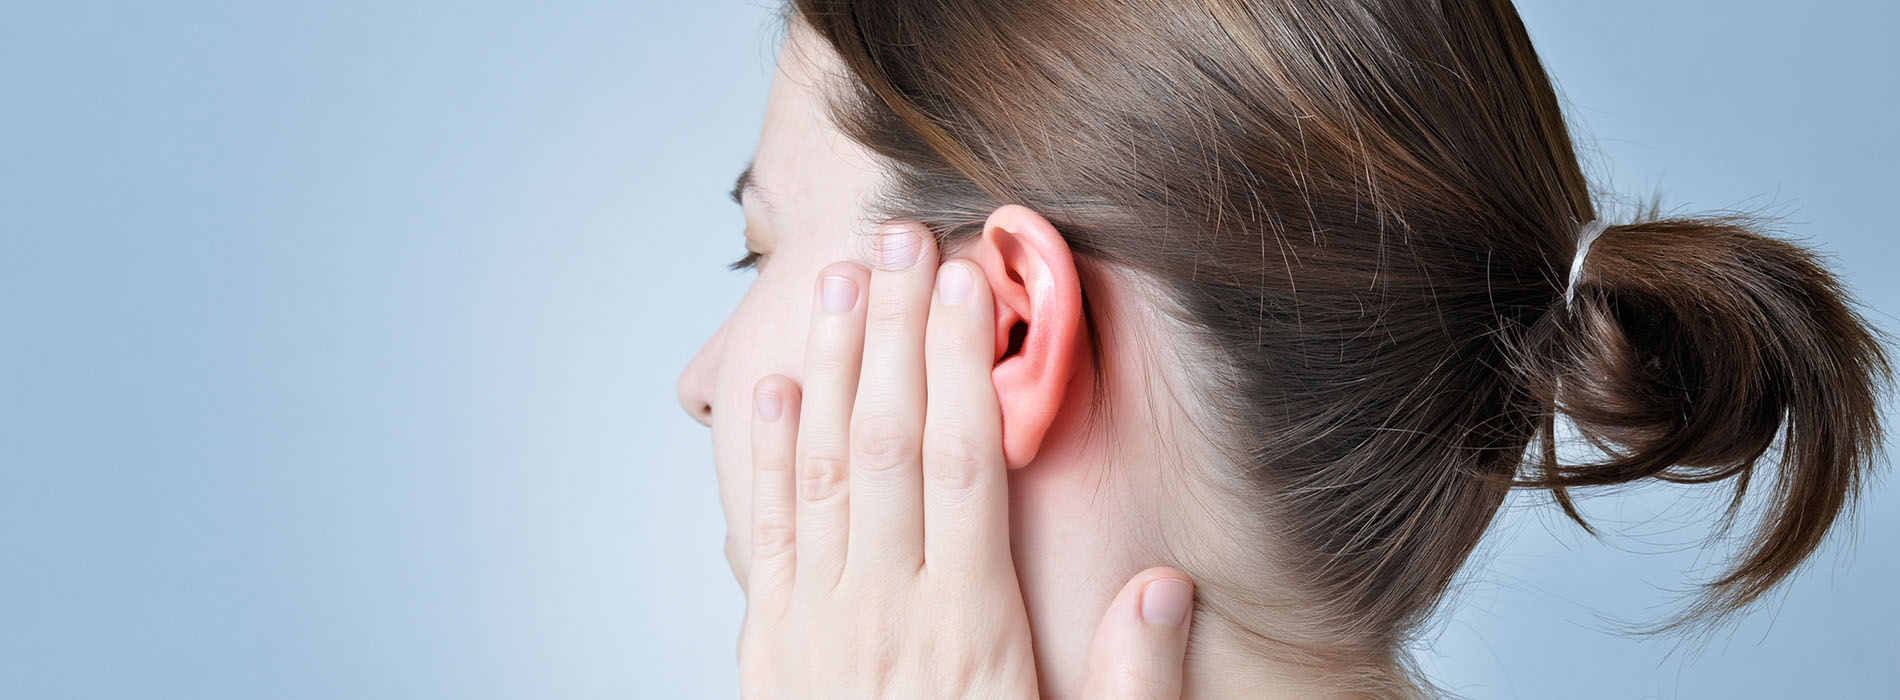 Profile of woman touching her sore ear